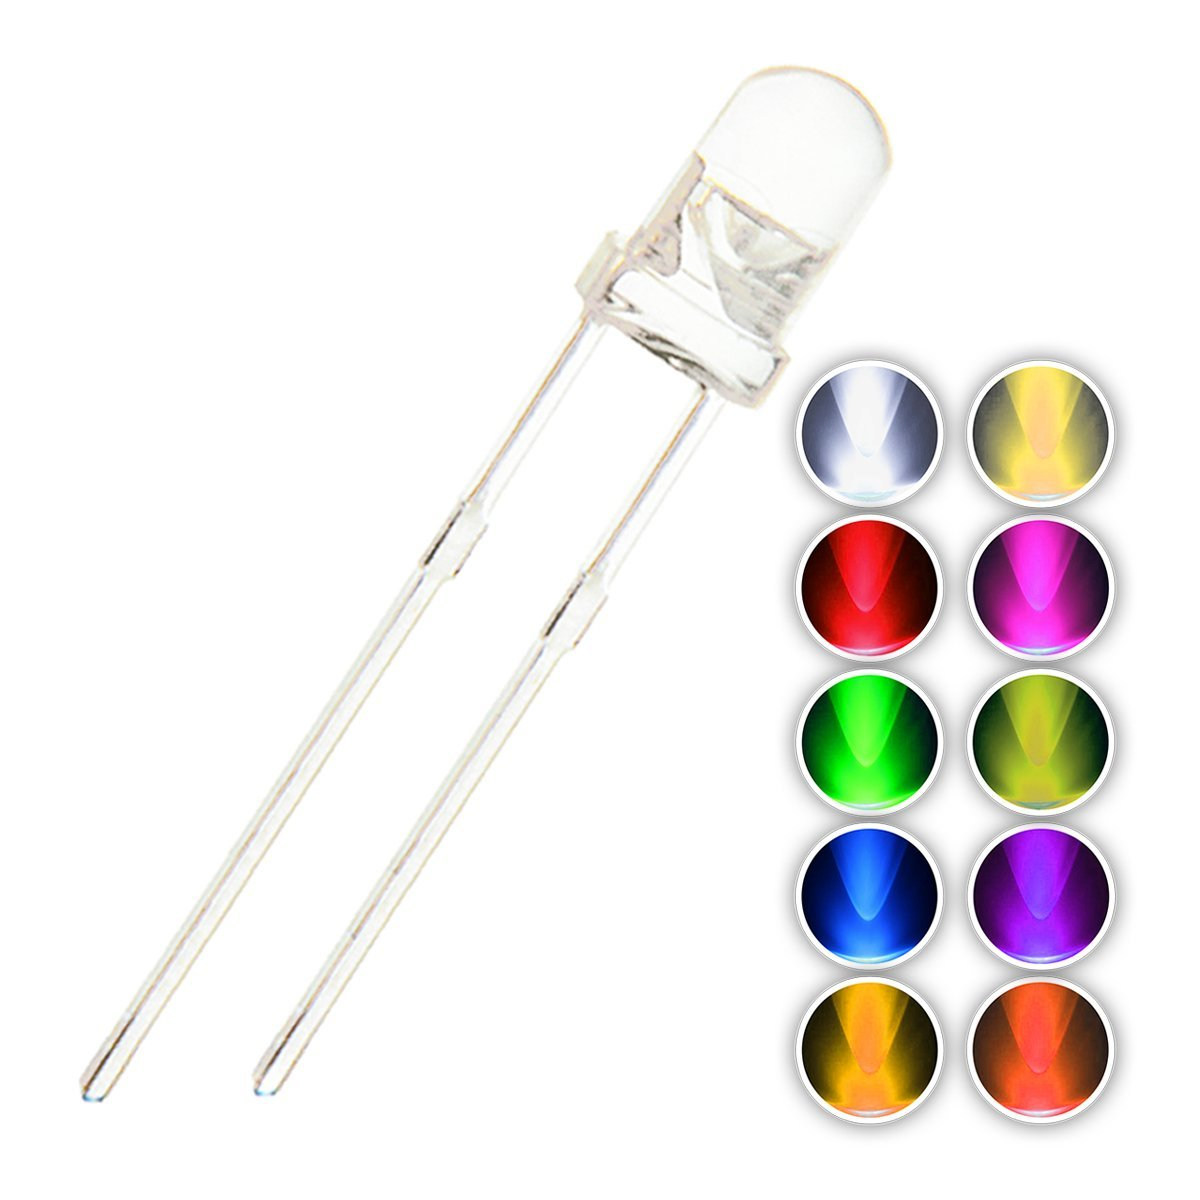 Diodes The Cheapest Price 100pcs 3mm 5mm Dip Transparent Cover Led Red Yellow Green Blue Warm White High Bright F3 F5 Quality Bead Light Emitting Diode Electronic Components & Supplies